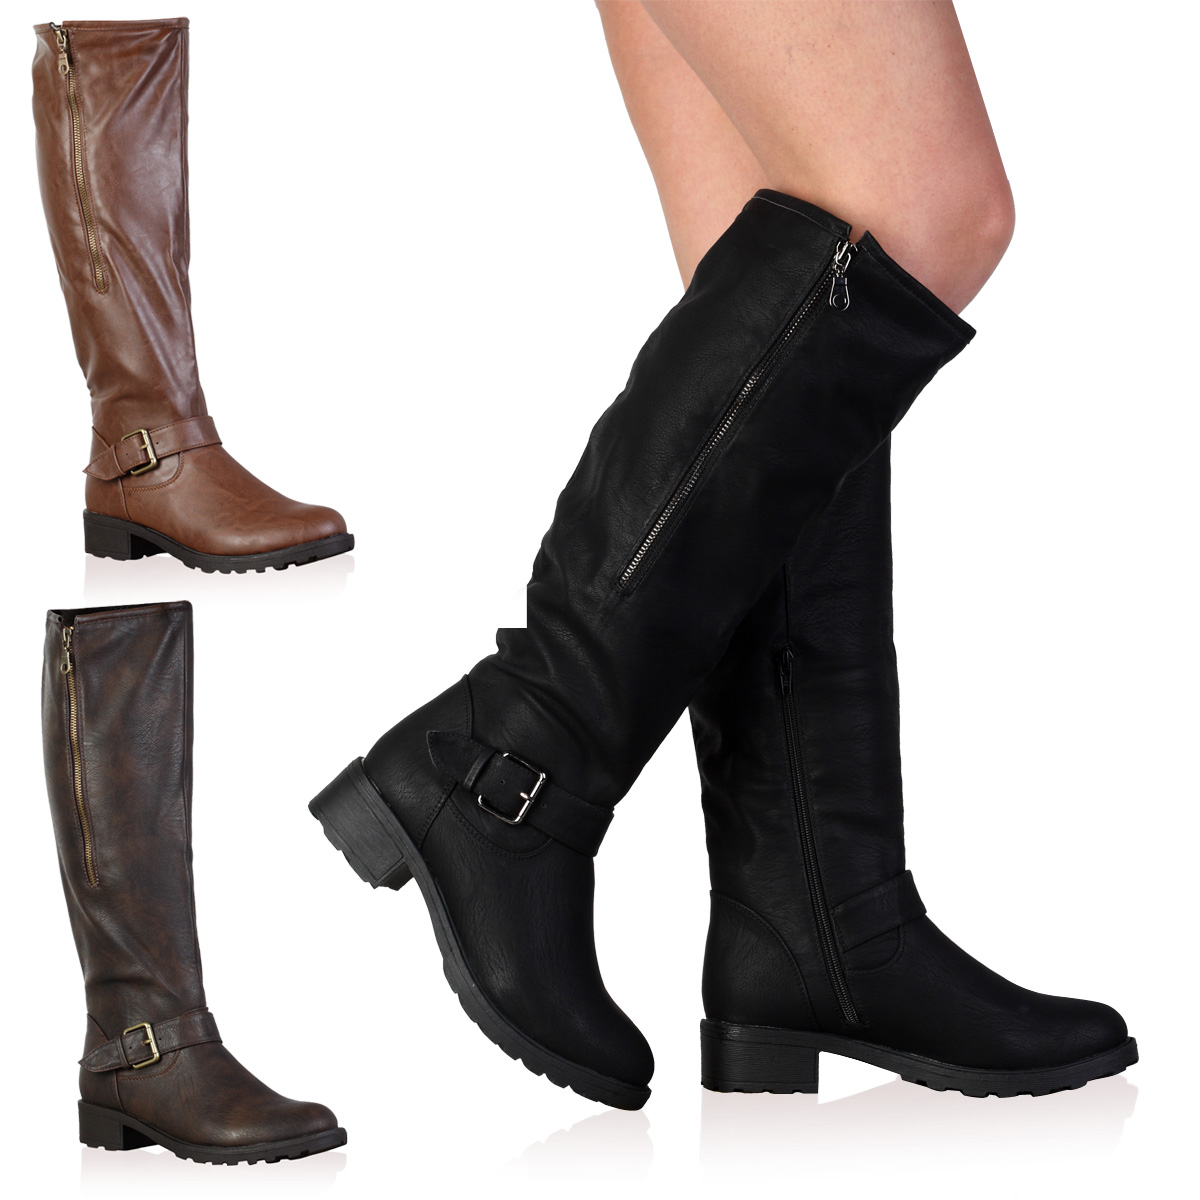 ladies in knee high boots | Gommap Blog